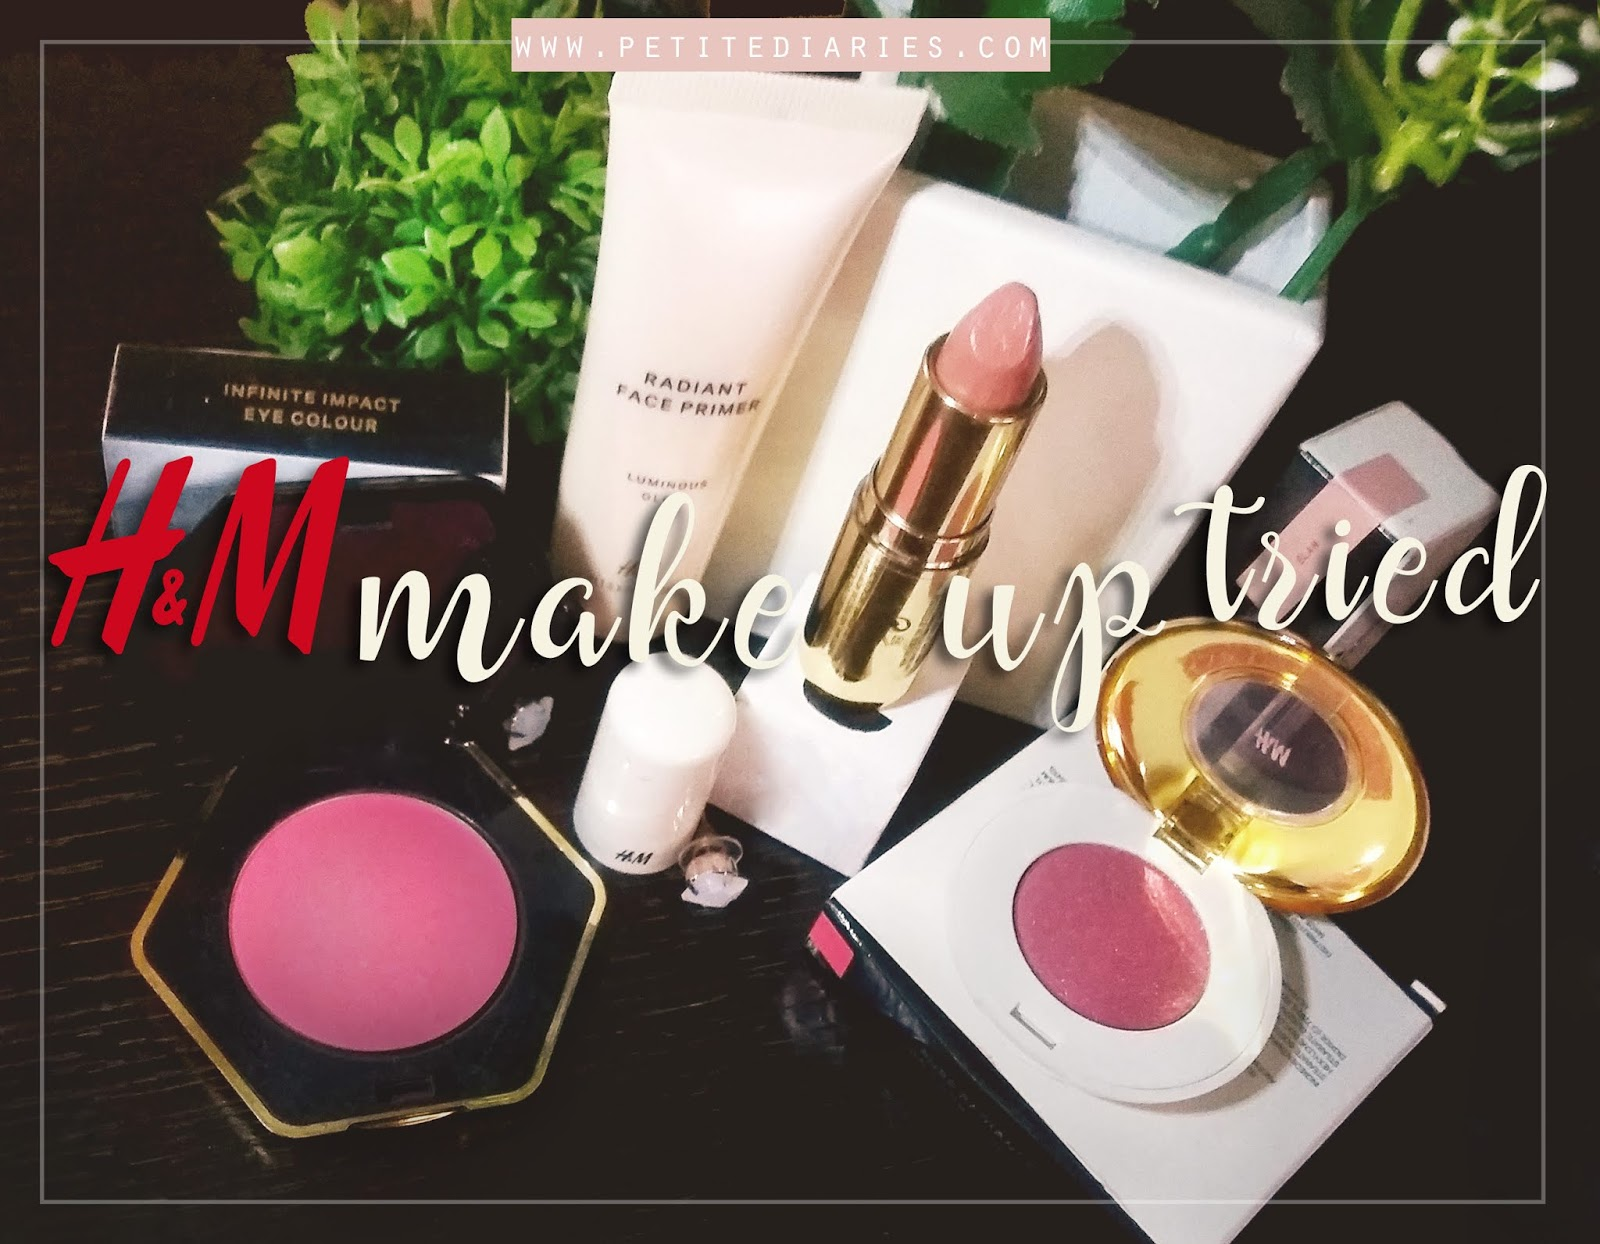 review H&M make up line